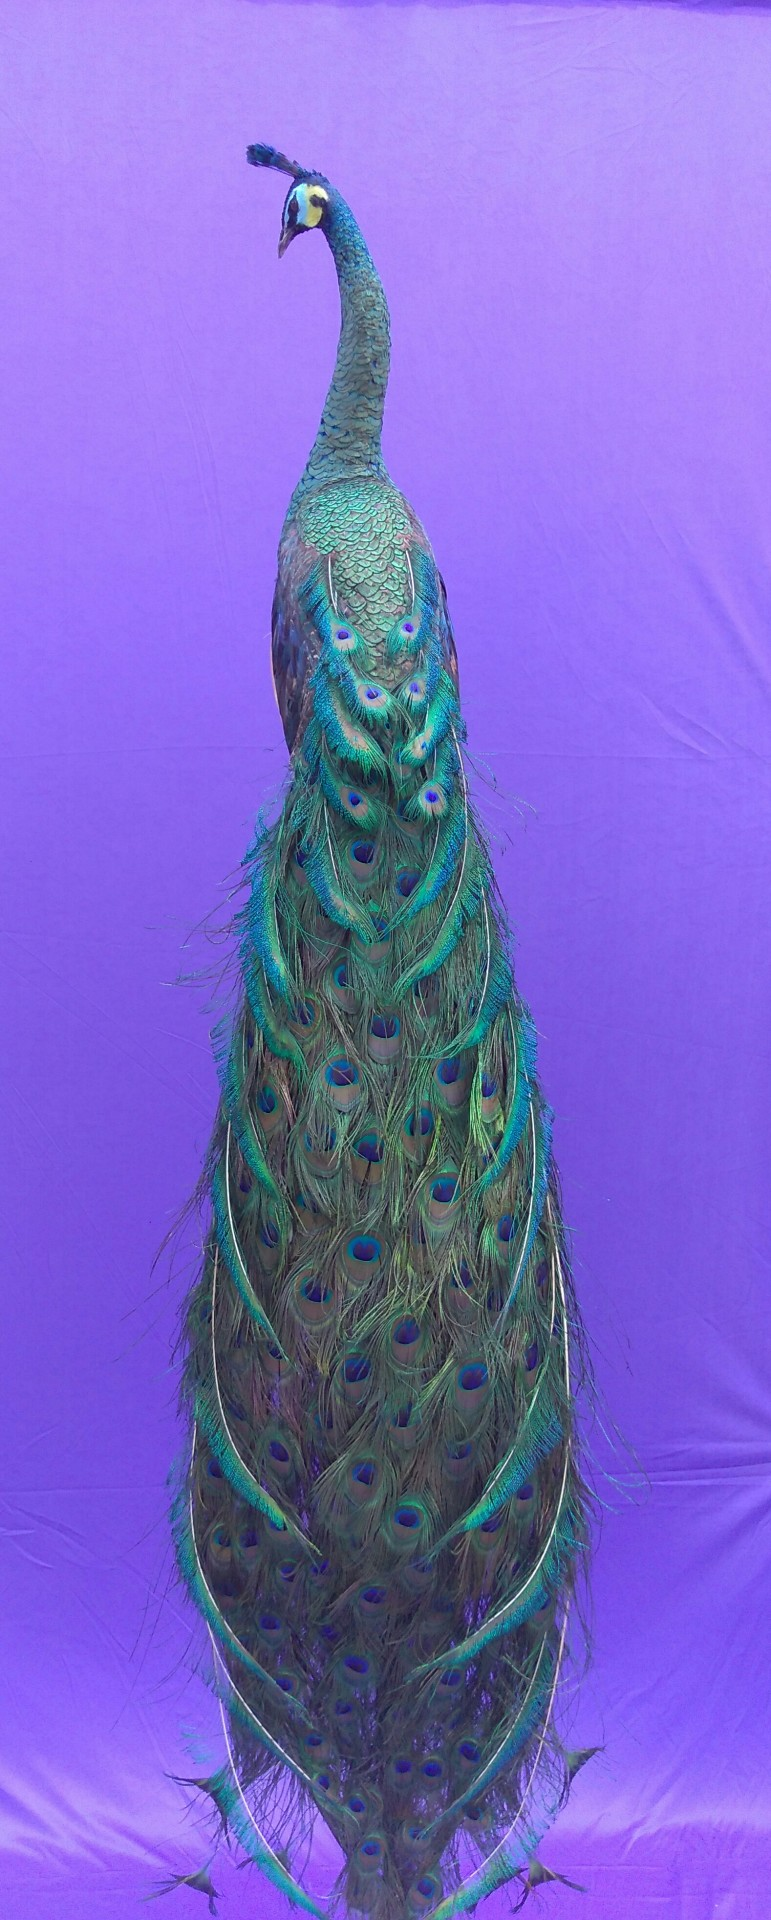 emerald green peacock taxidermy bird mount, java green hybrid, spaulding peacock with detachable tail